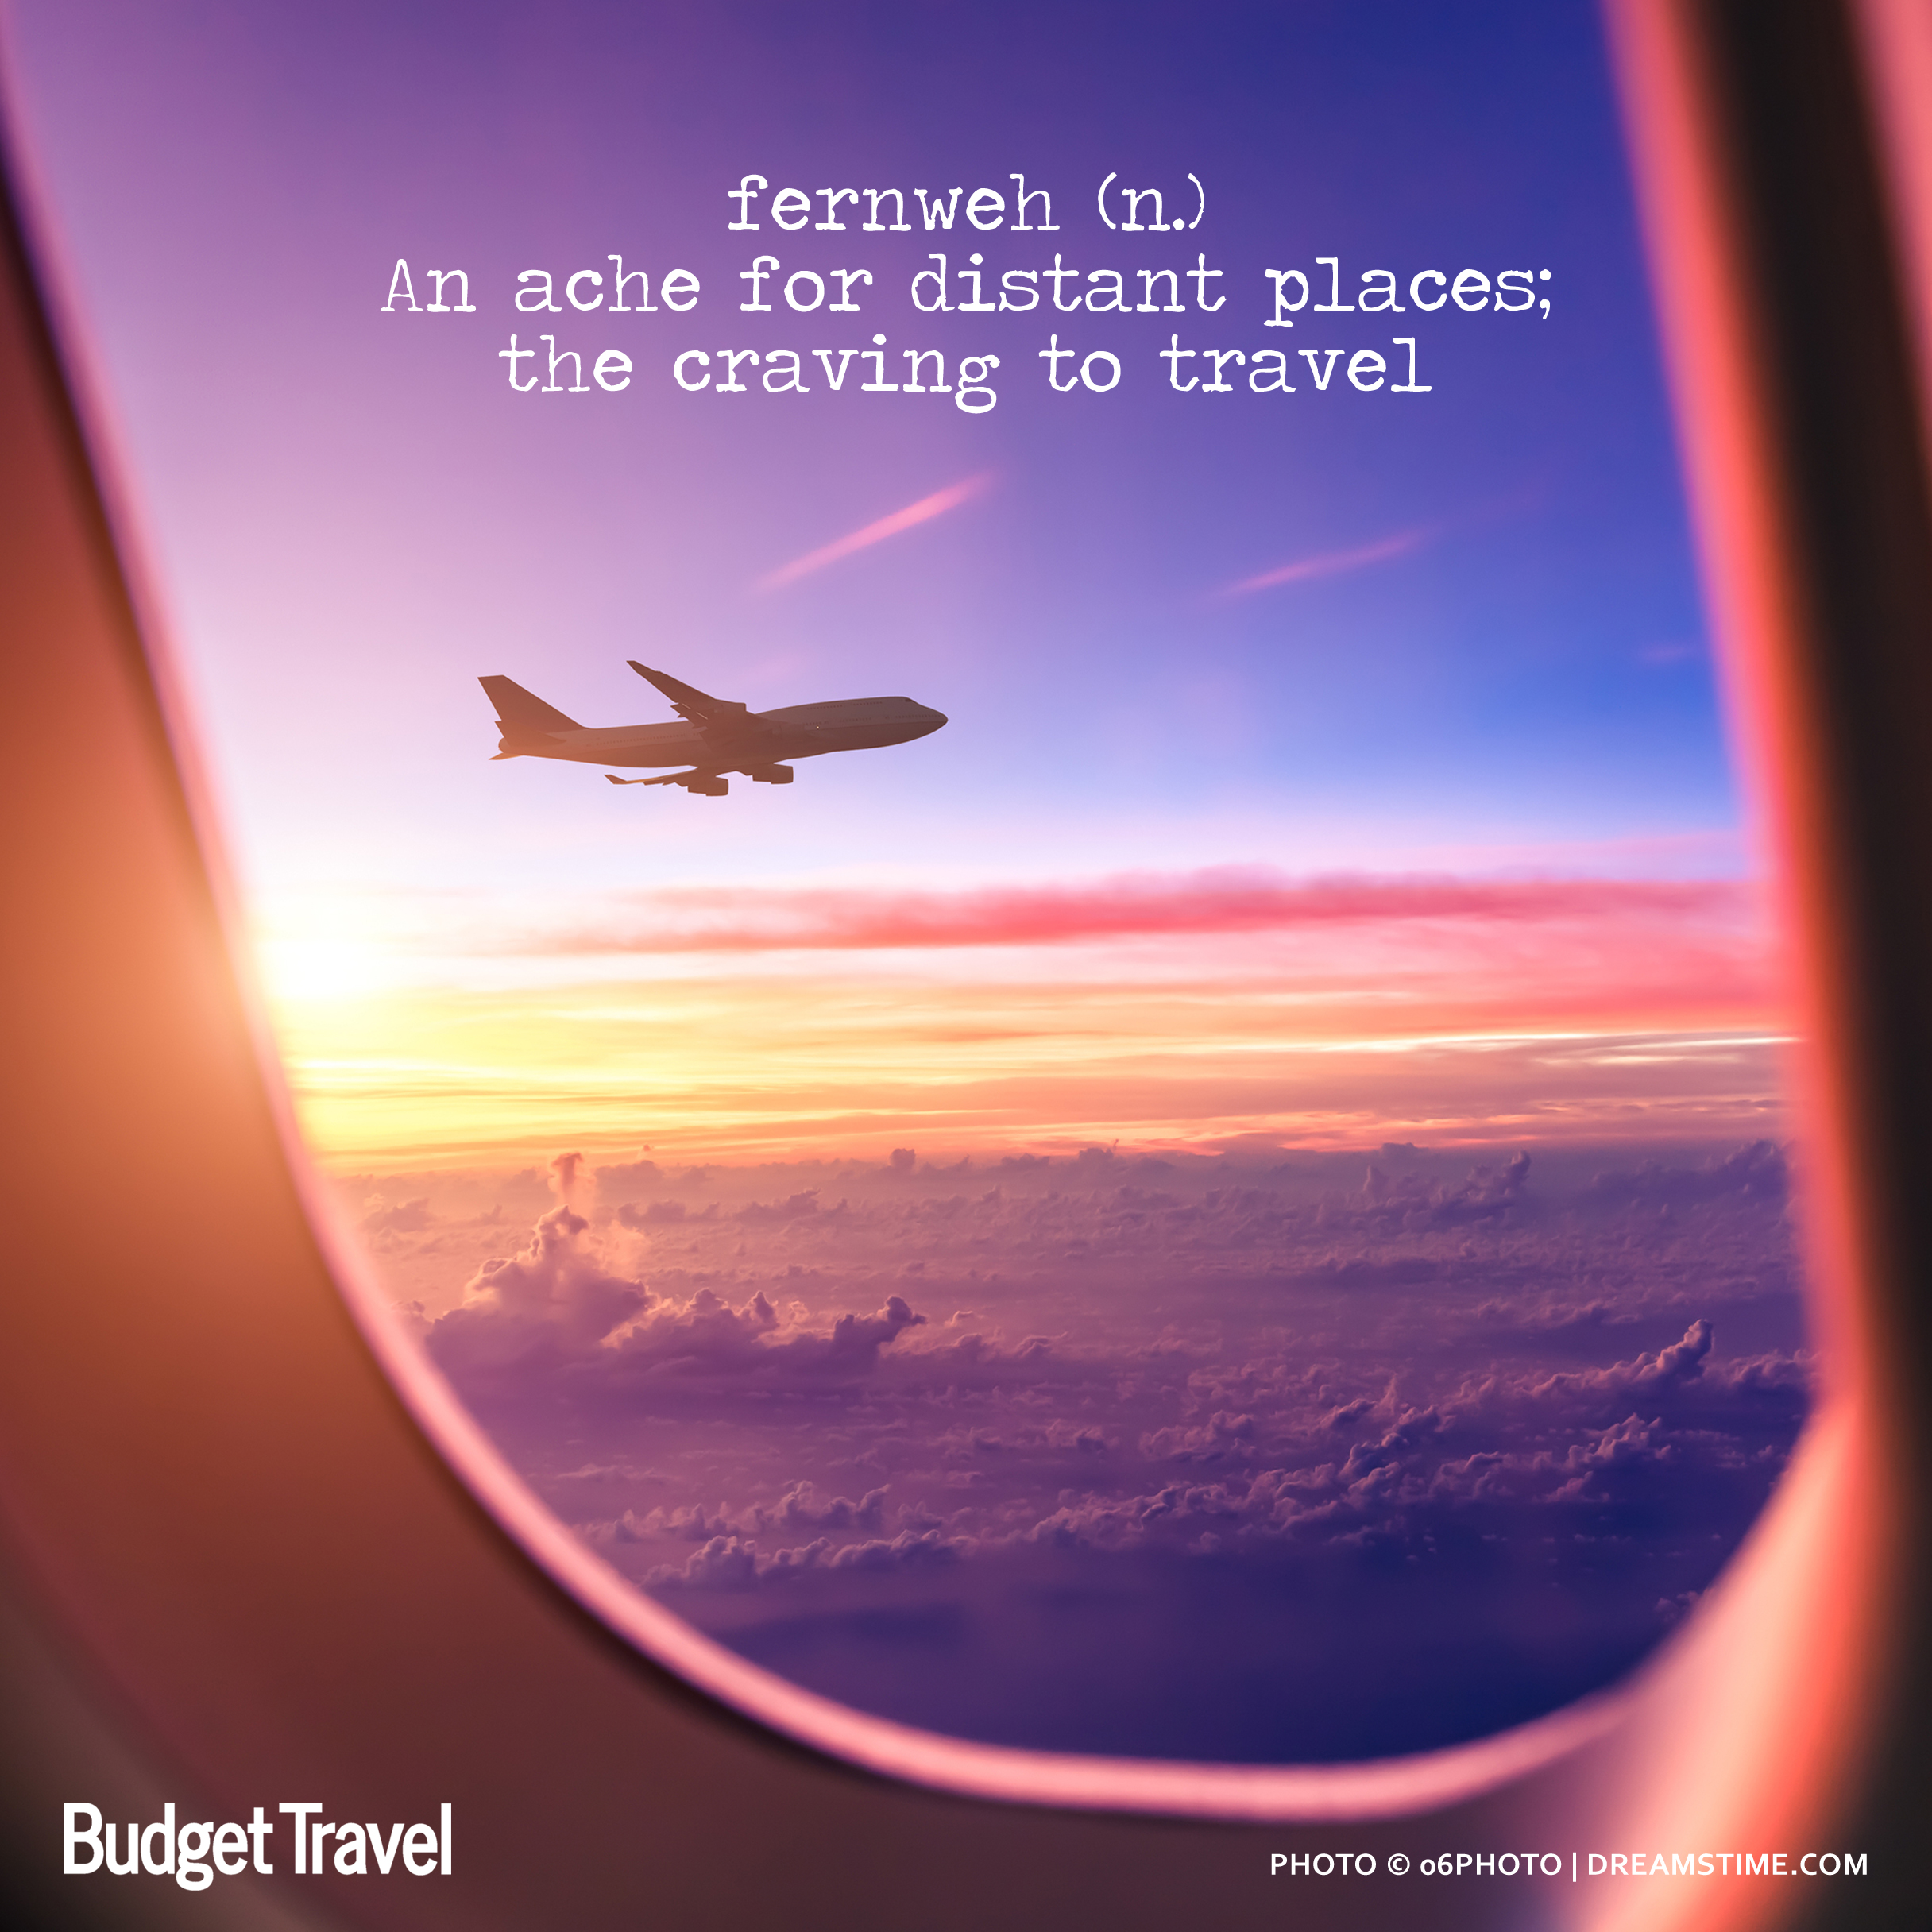 Fernweh Travel Quote 472015 19447 Original